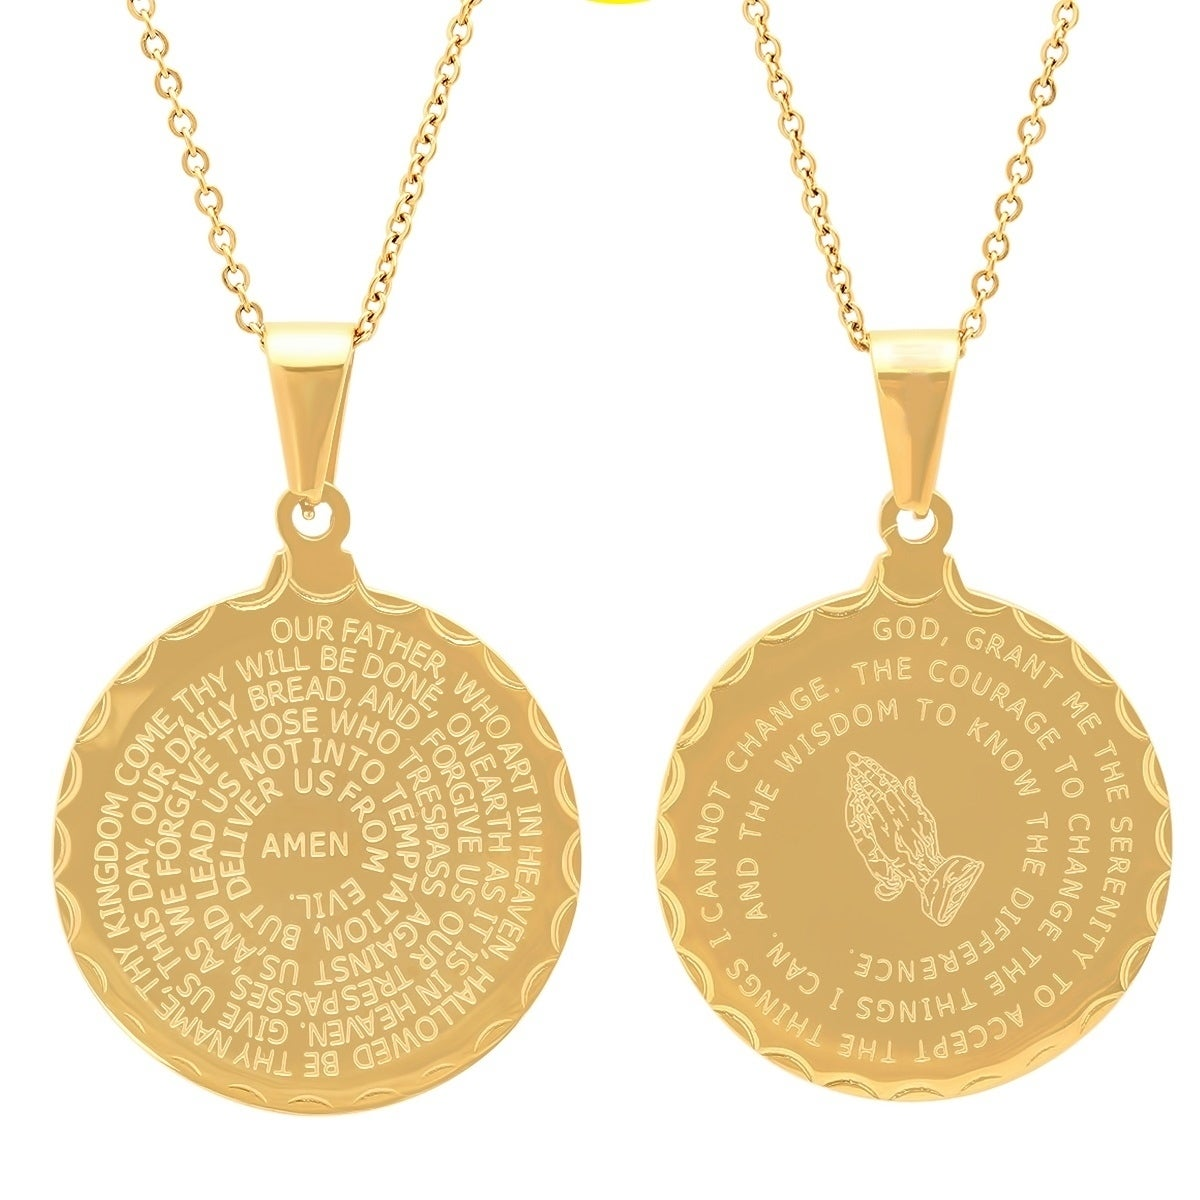 Shop piatella ladies double sided gold tone lords prayer and shop piatella ladies double sided gold tone lords prayer and serenity prayer pendant free shipping on orders over 45 overstock 17568155 aloadofball Images